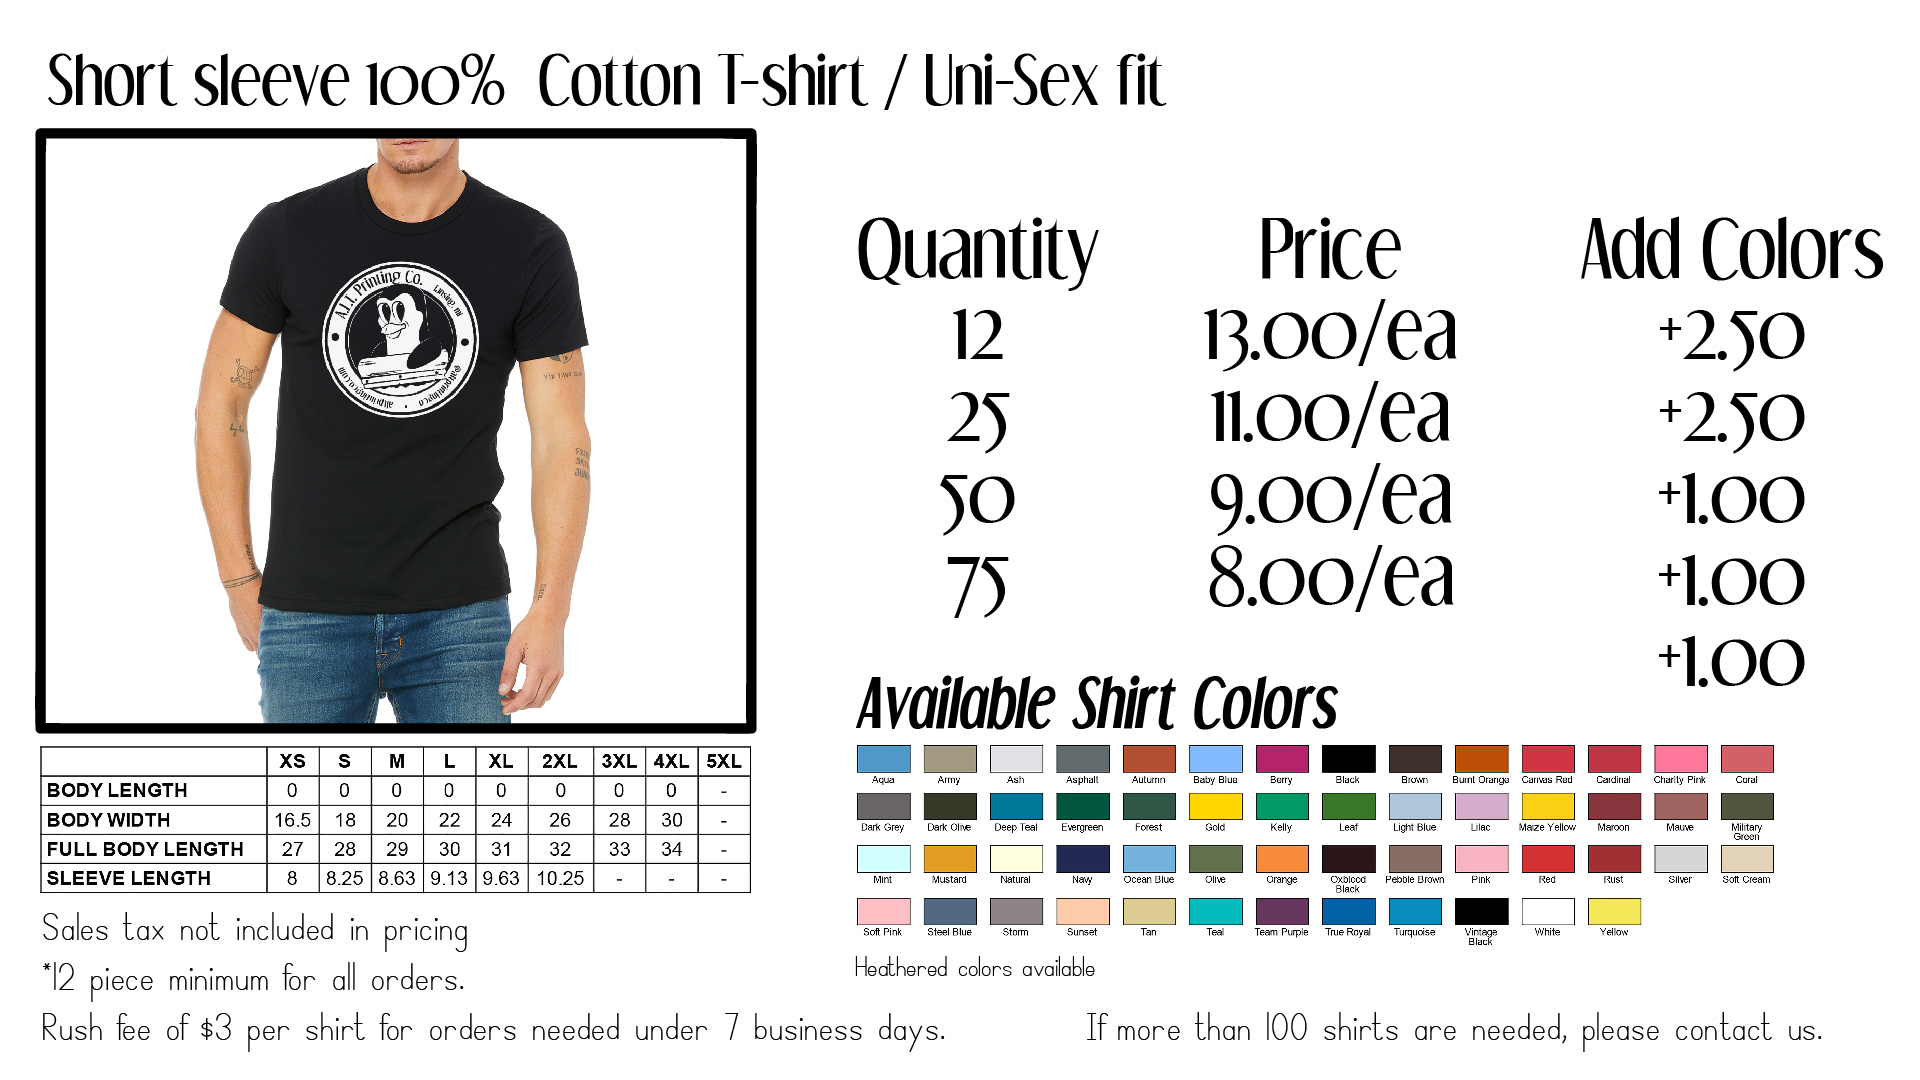 These are printed on Bella + Canvas Shirts or Next Level. High quality shirts that hold up best over time and years of washing. Heathered options available on 50/50 t-shirts. Design work and One color front and back included with price.